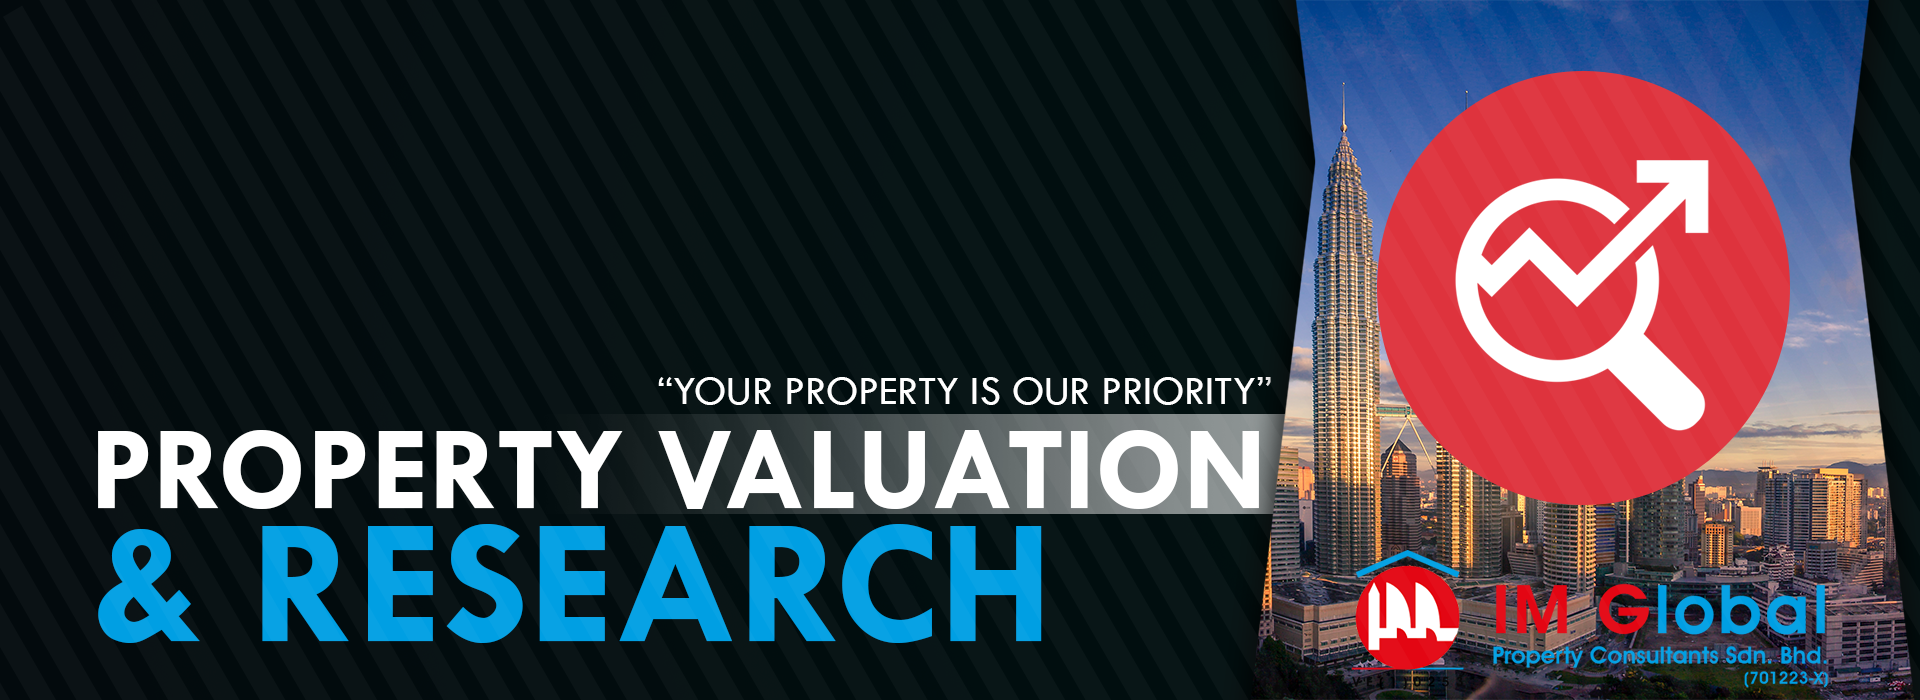 PROPERTY-VALUATION-RESEARCH